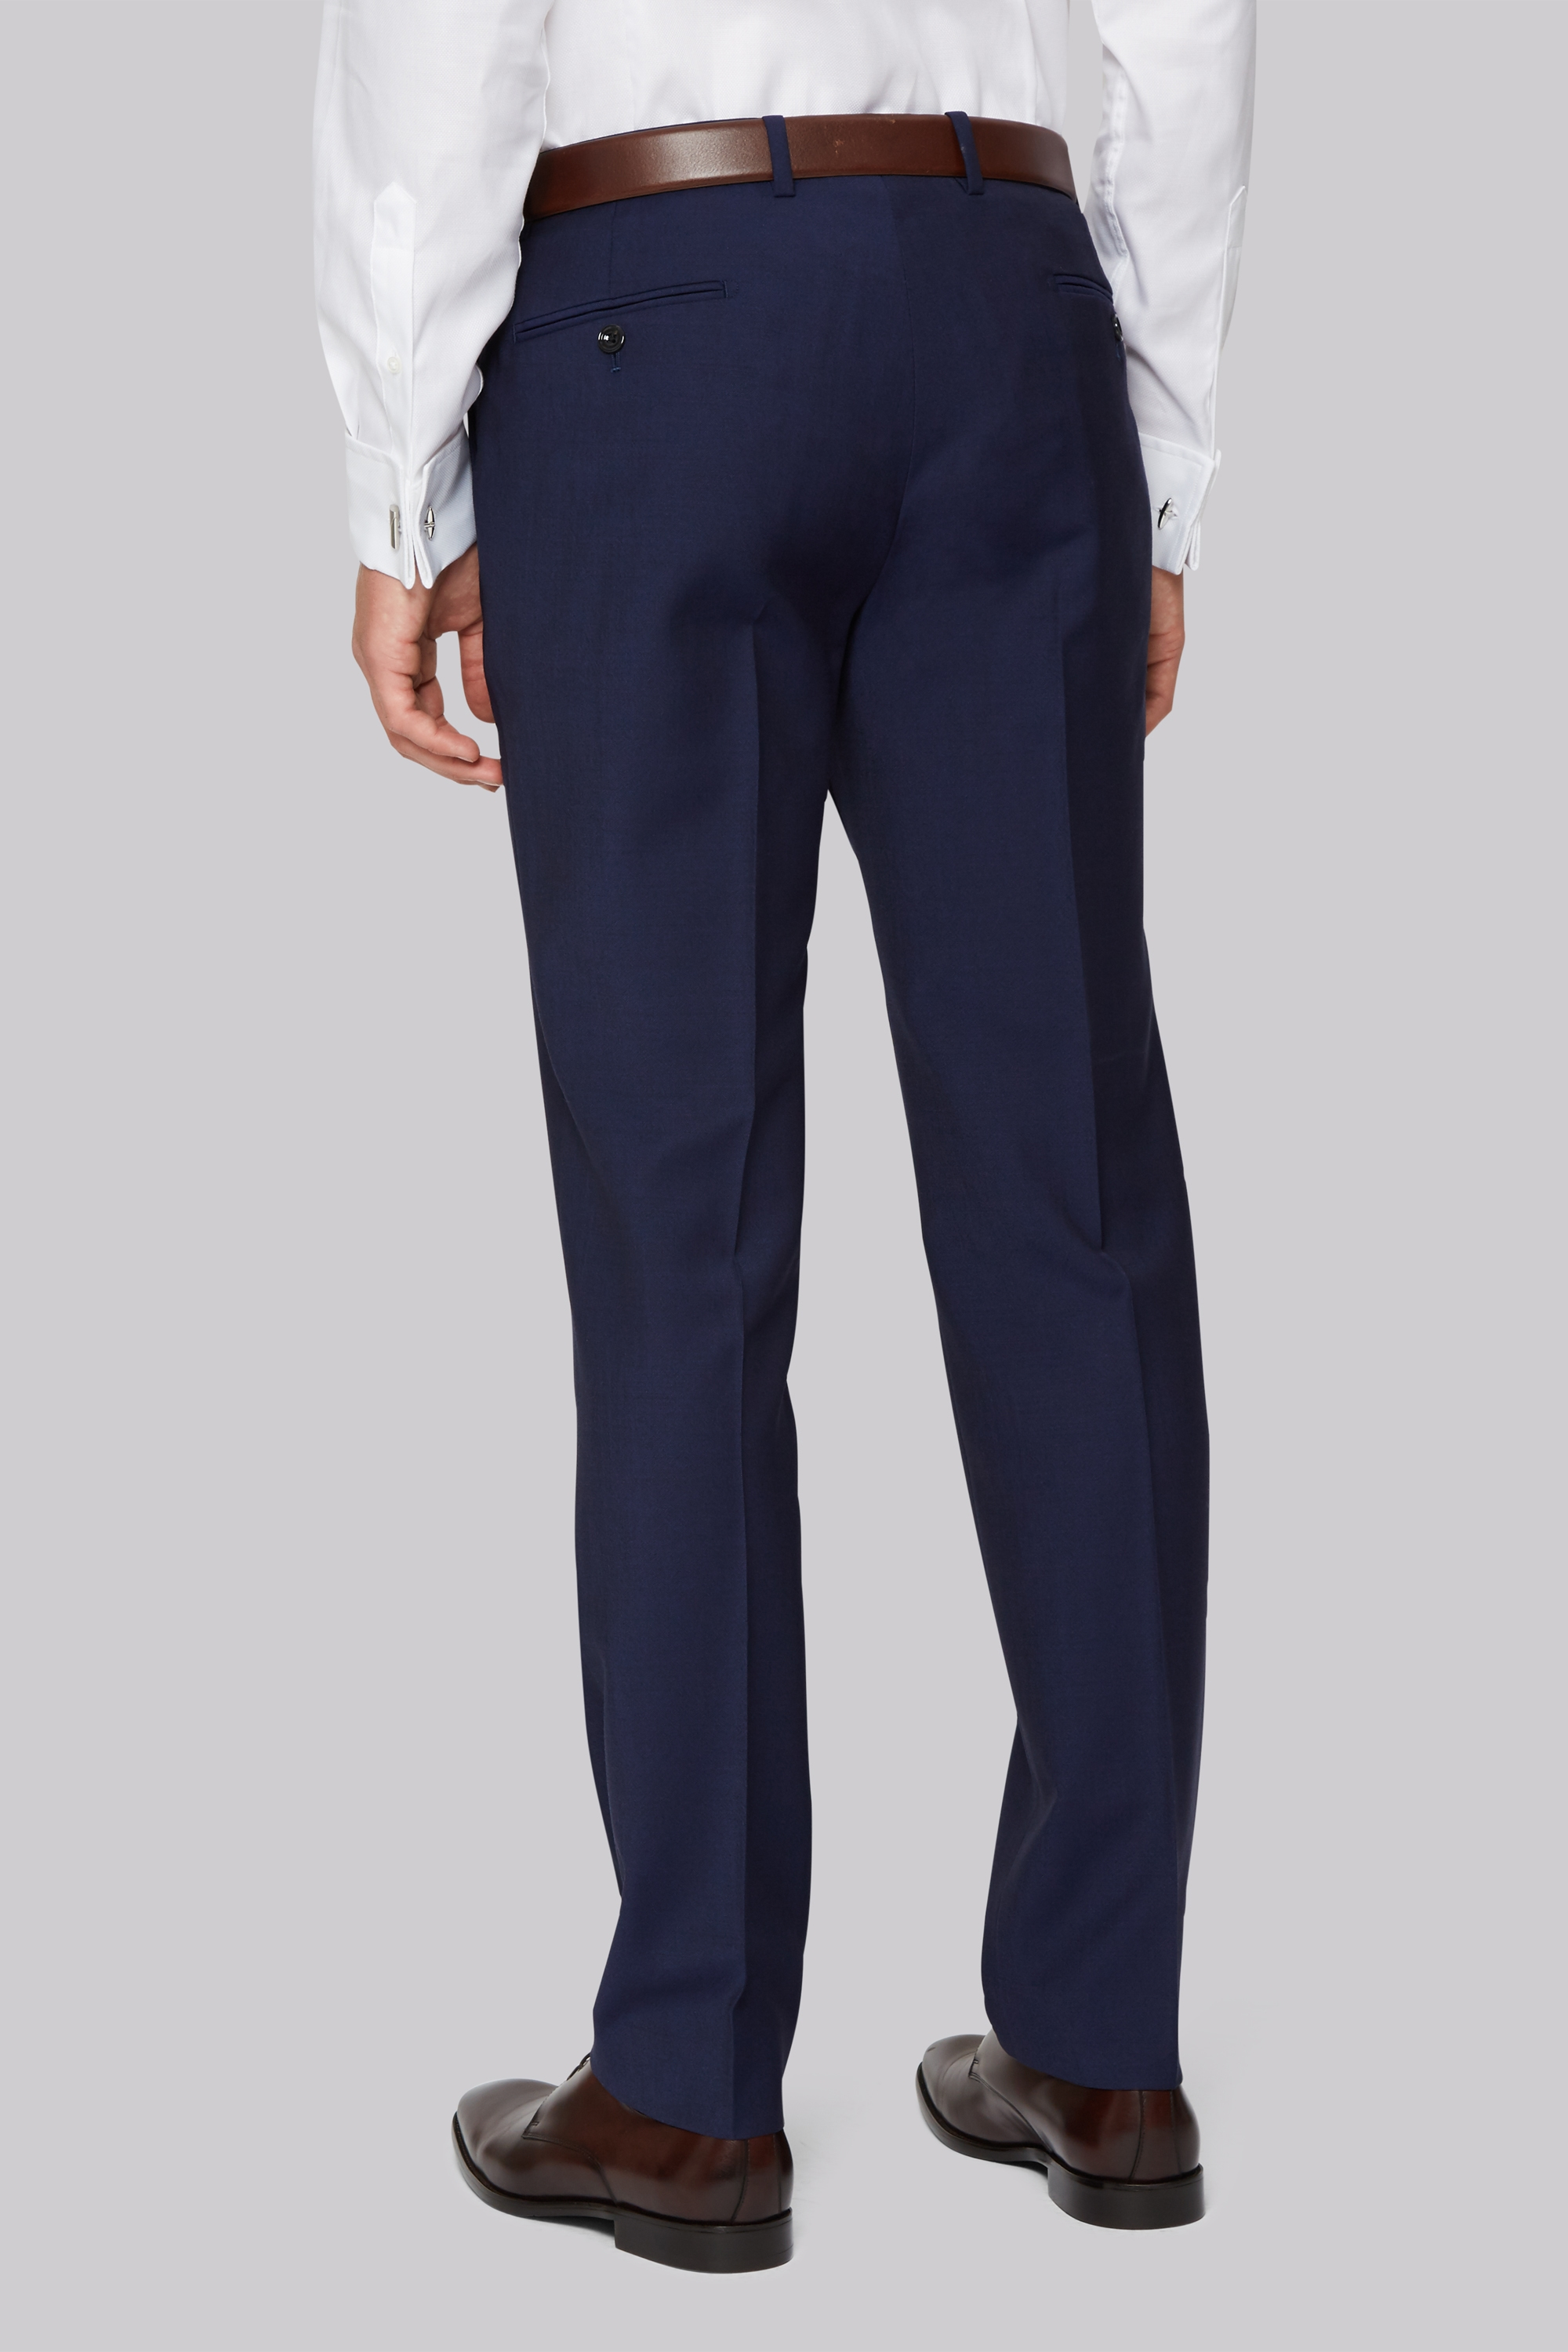 Tailored Trousers from Sartoria Corcos-Part II